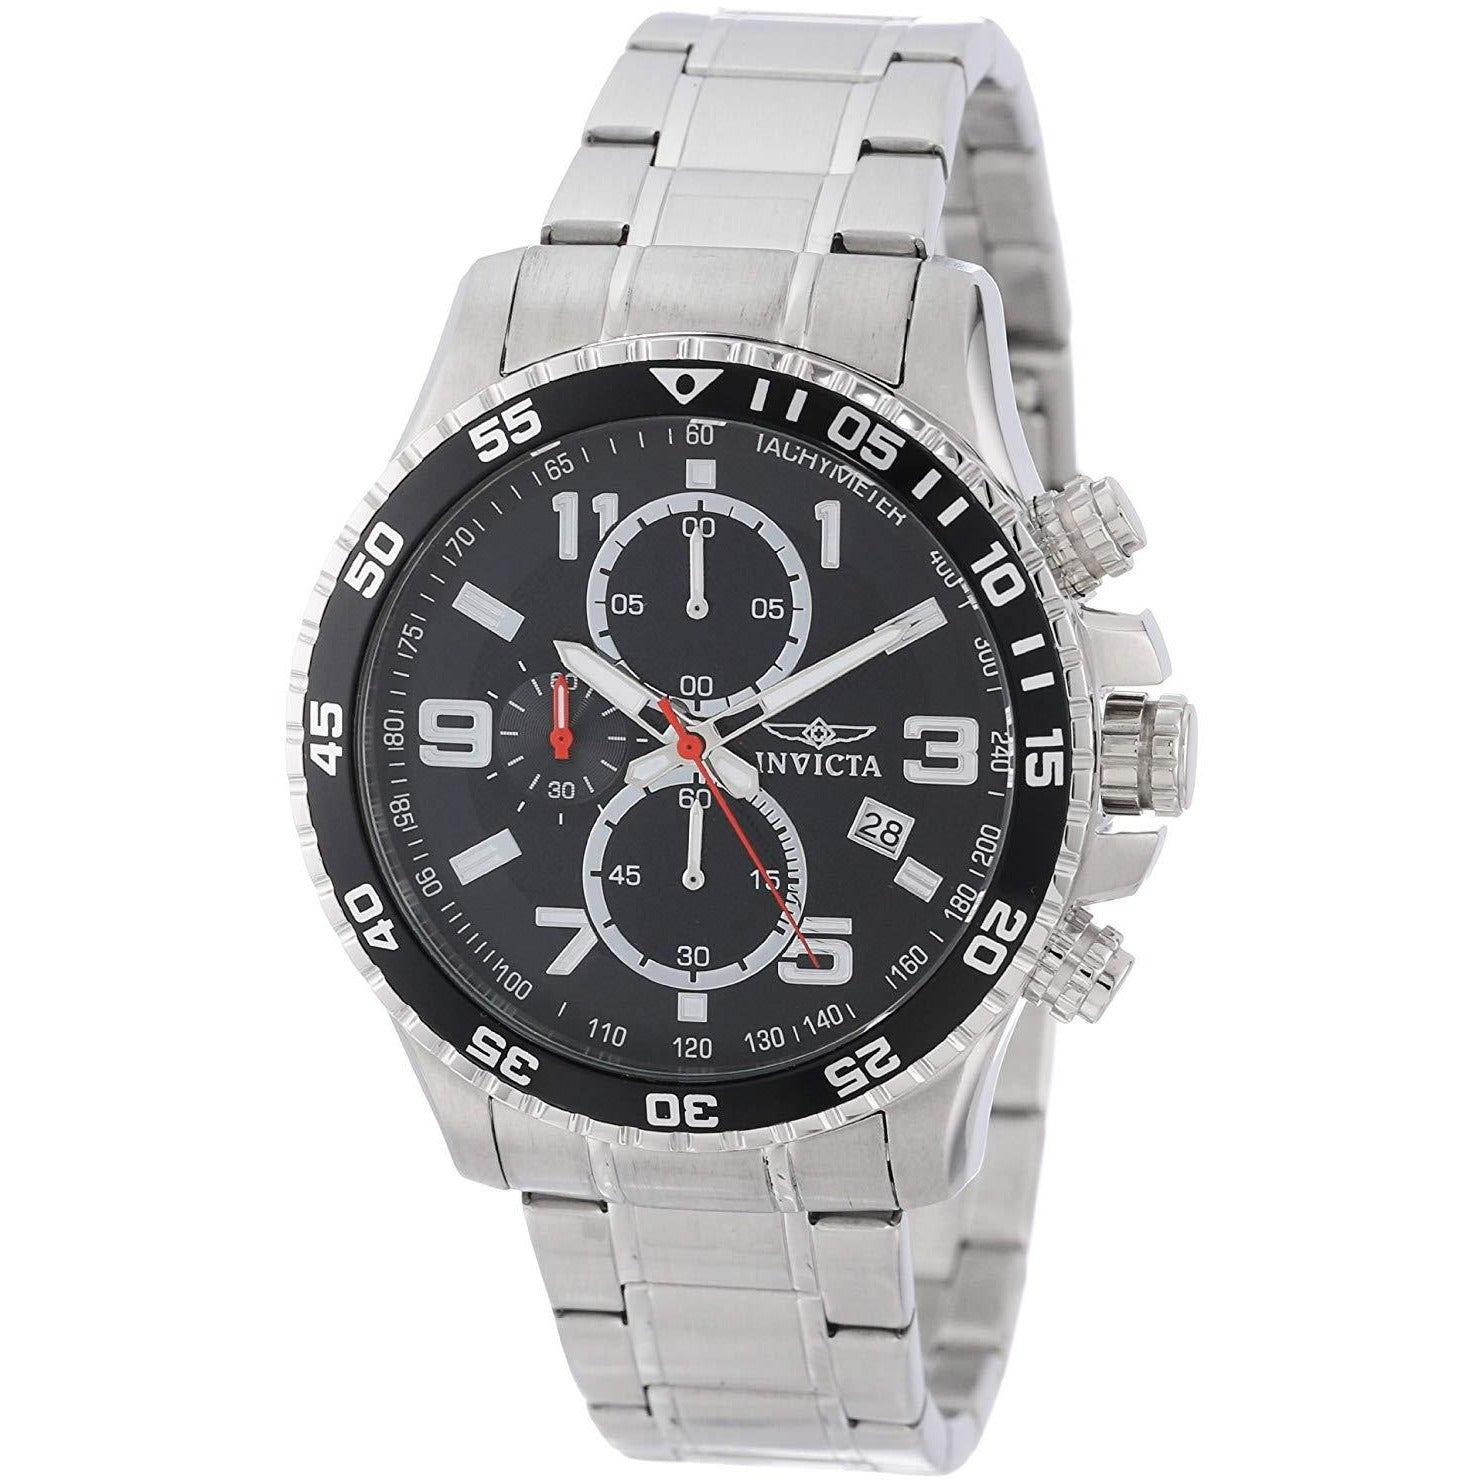 Invicta Men's 14875 Specialty Chronograph Black Textured Dial Stainless Steel Watch